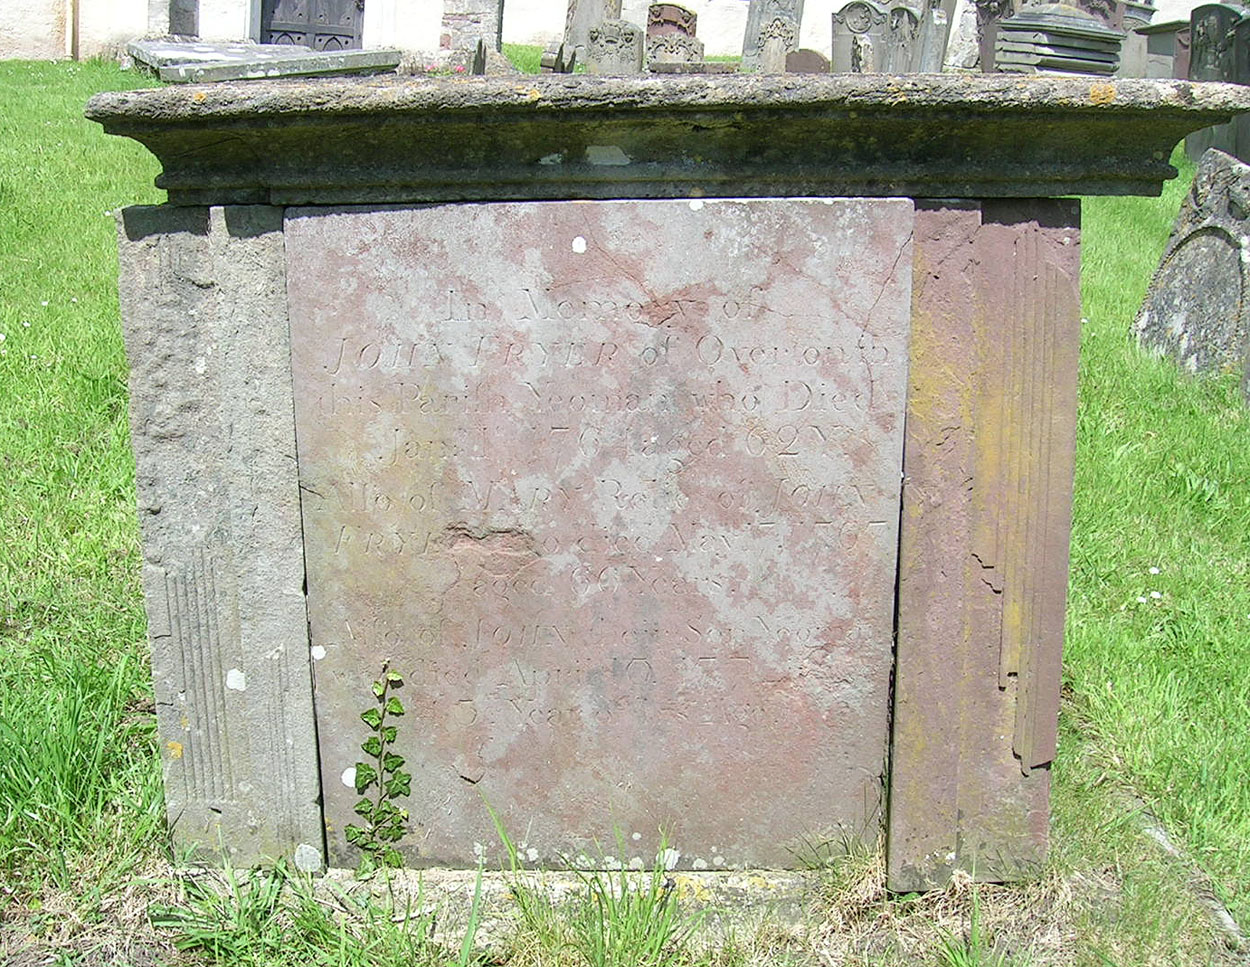 Tomb of John Fryer (b abt. 1695) his wife, Mary, (nee King) and others